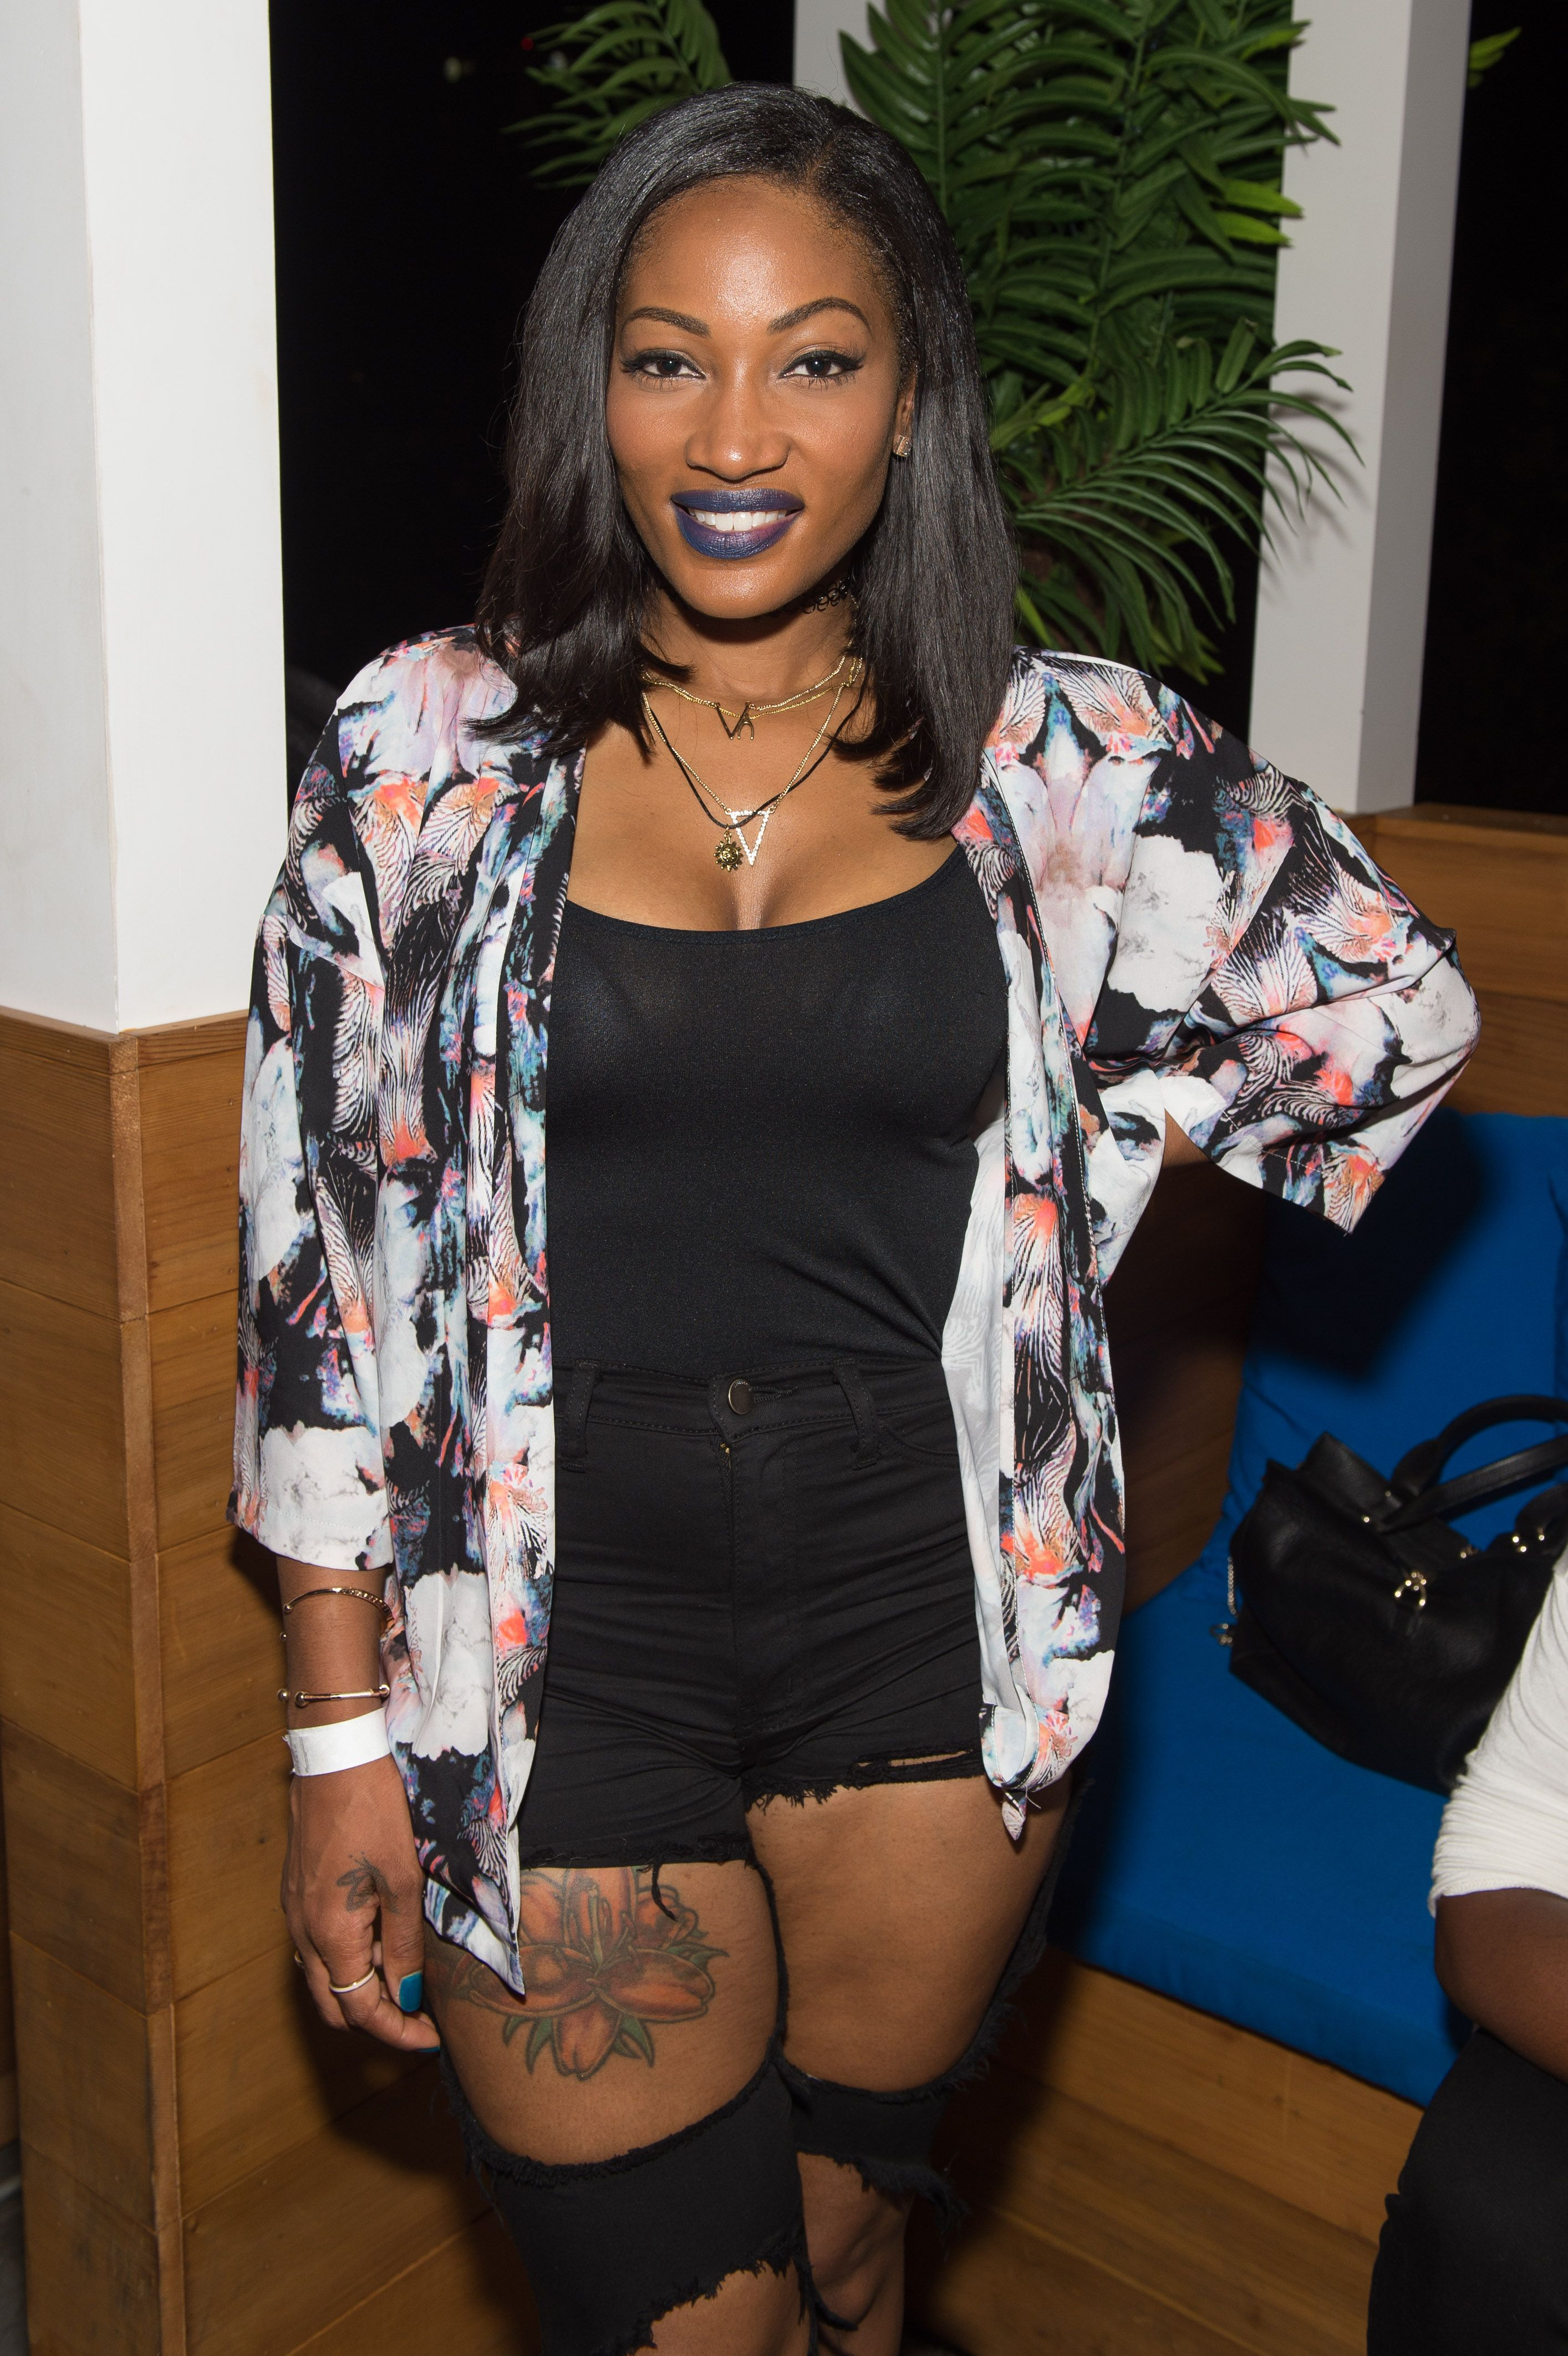 """Erica Dixon at the private screening of """"The Rap Game"""" on July 22, 2016 in Atlanta, Georgia 